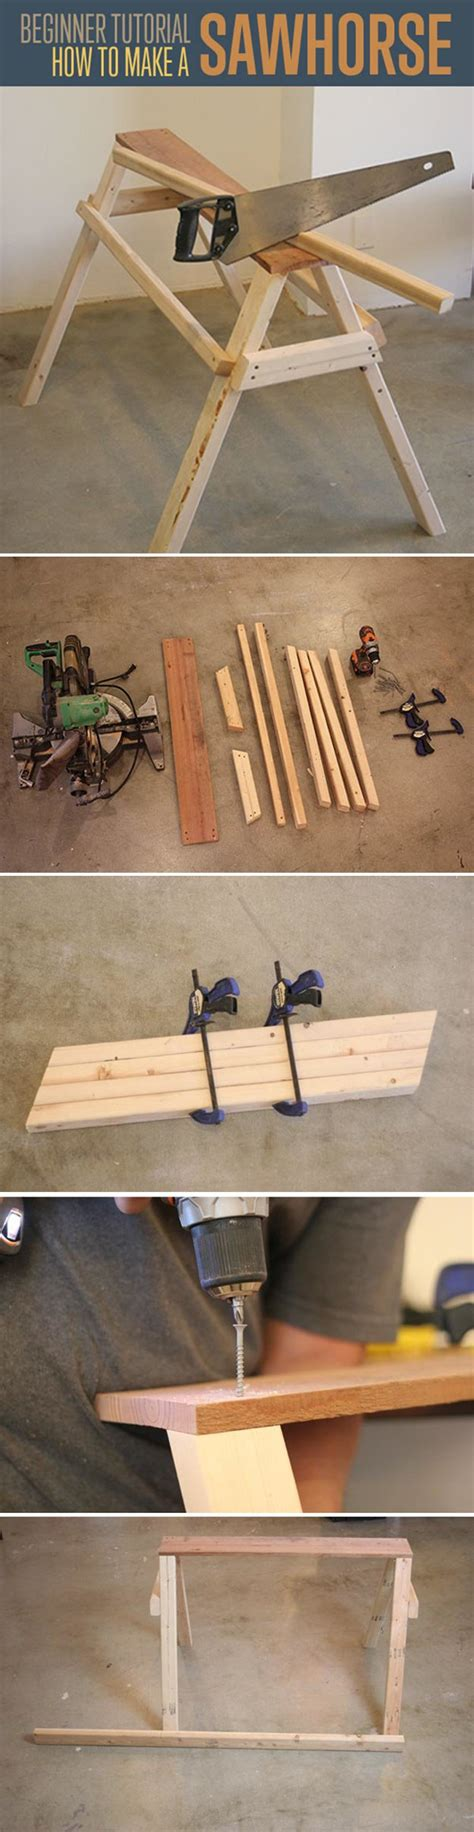 woodworking projects easy easy woodworking projects diyready easy diy crafts